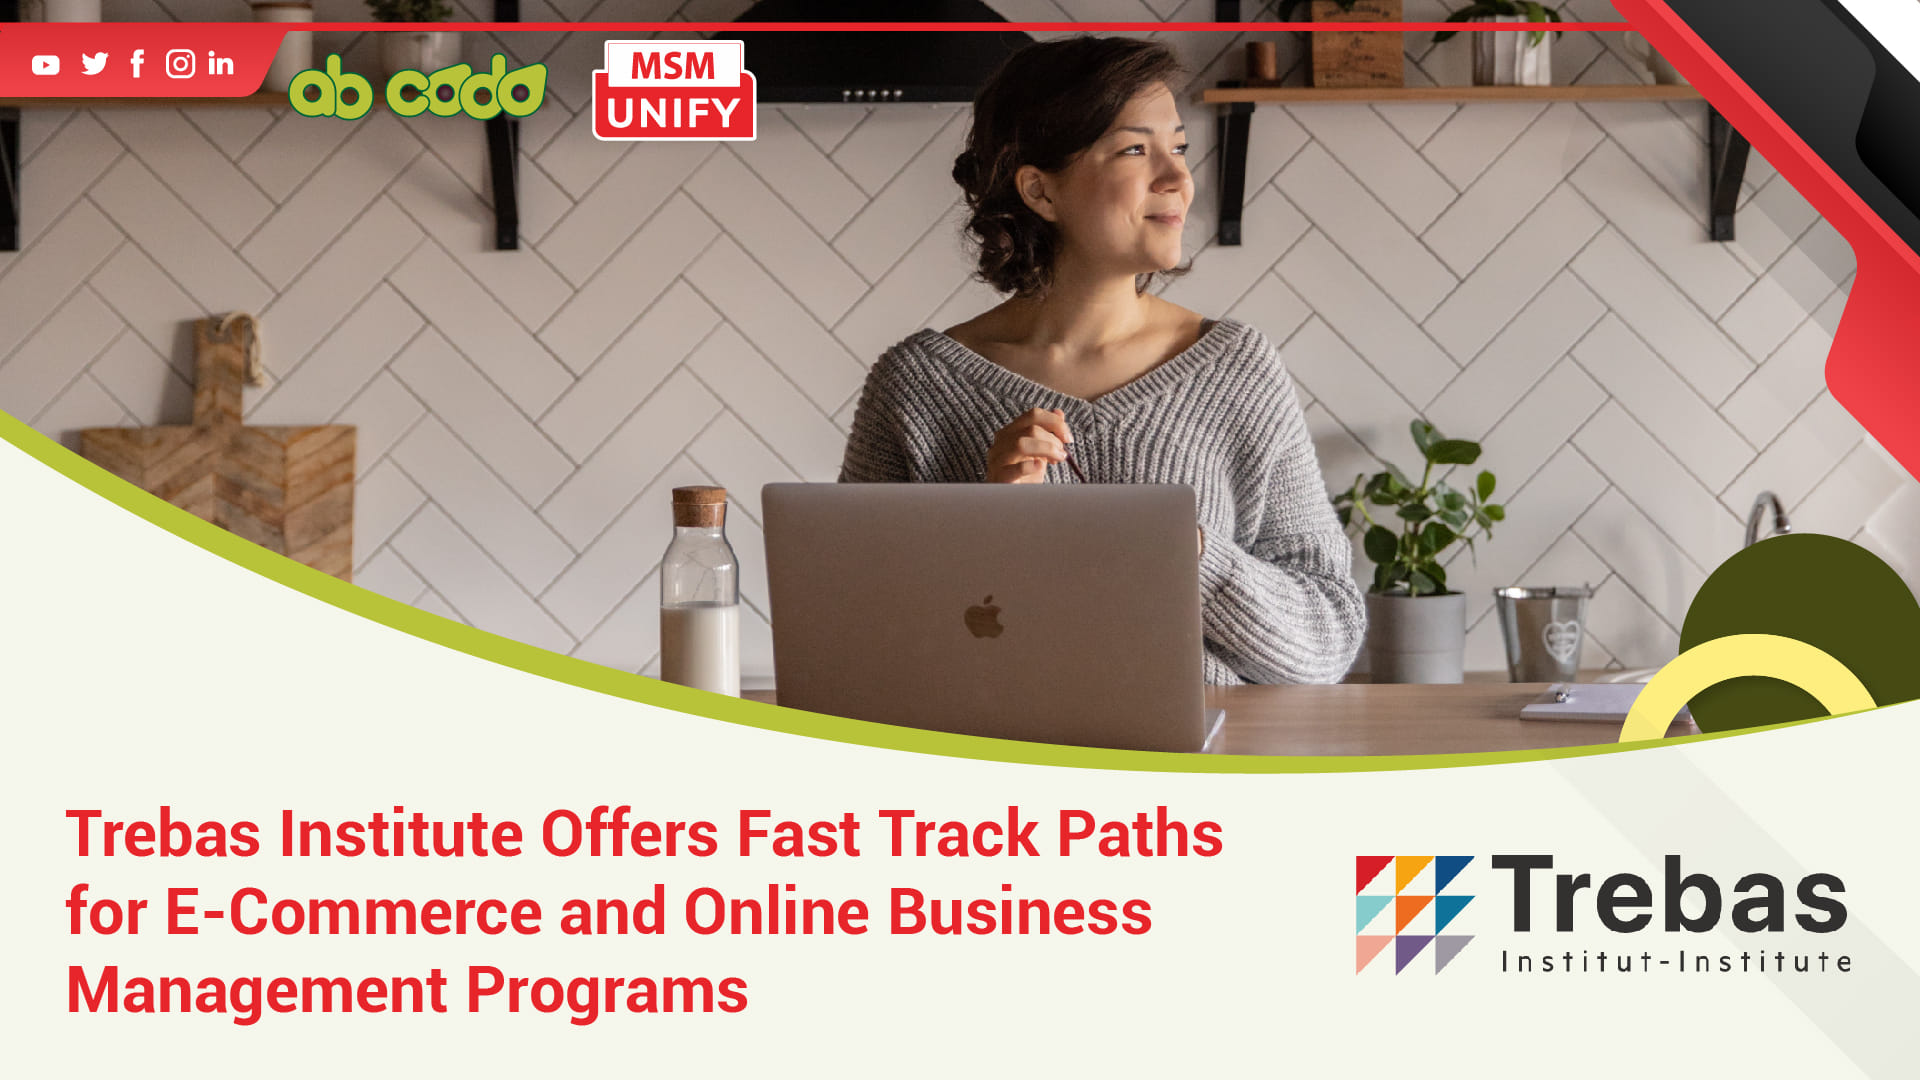 Need a online marketing agencies in san jose? Trebas Institute Offers Fast Track Paths for E-Commerce ...